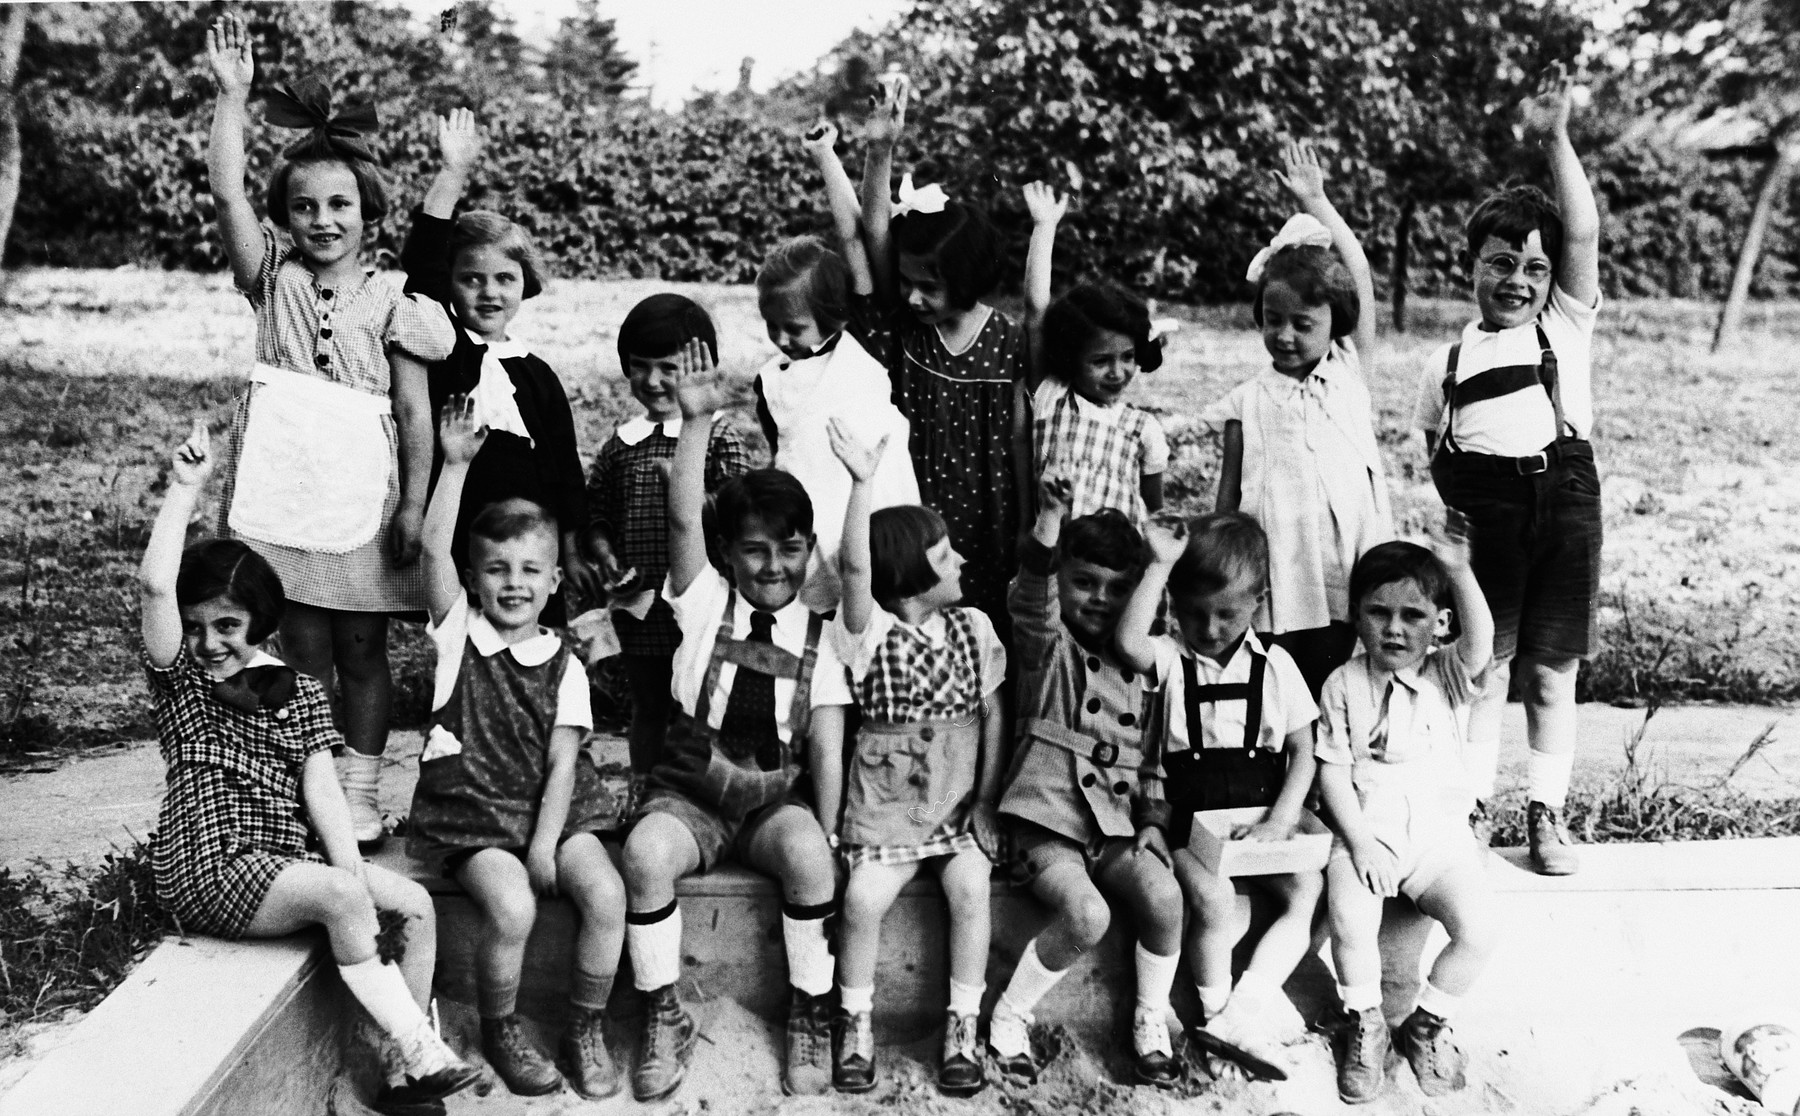 A group of elementary age children enthusiastically raise their arms while posing in a garden.  Kitty Weichherz is sitting in the first row on the far left.  This photo was taken from the diary of Kitty's life written by her father, Bela Weichherz.